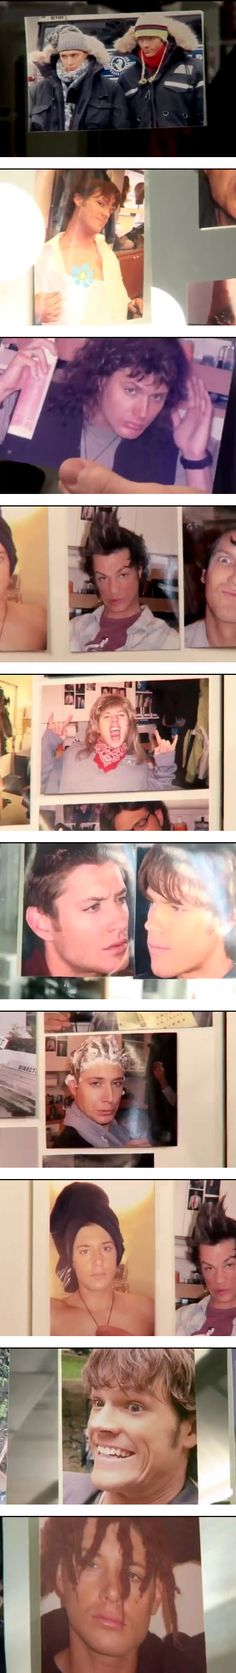 The pictures in J2's trailers